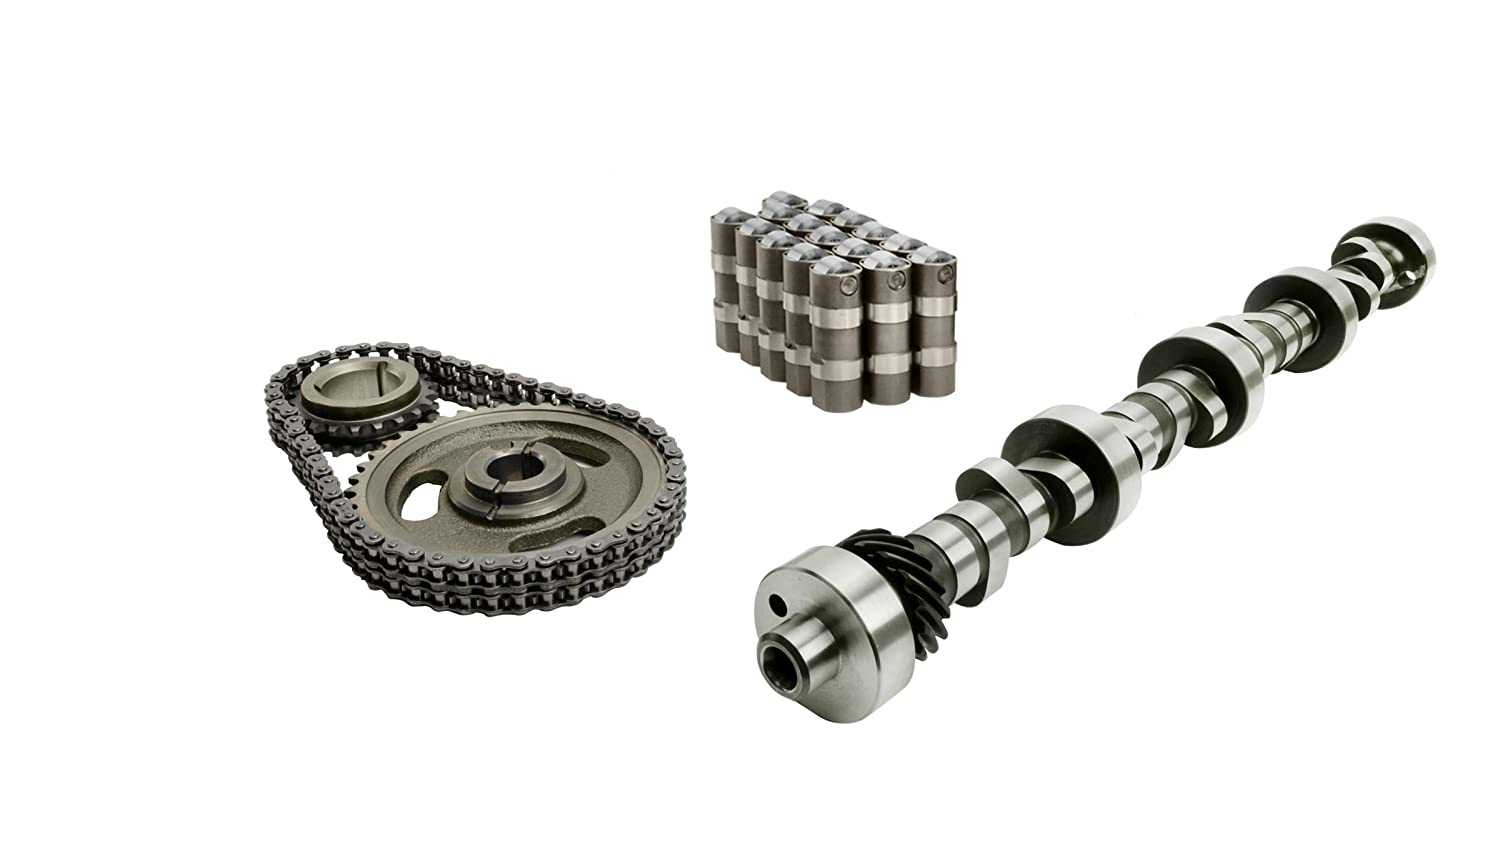 COMP Cams 32-421-8 Magnum 215//215 Hydraulic Roller Cam for Ford 351C 351M-400M